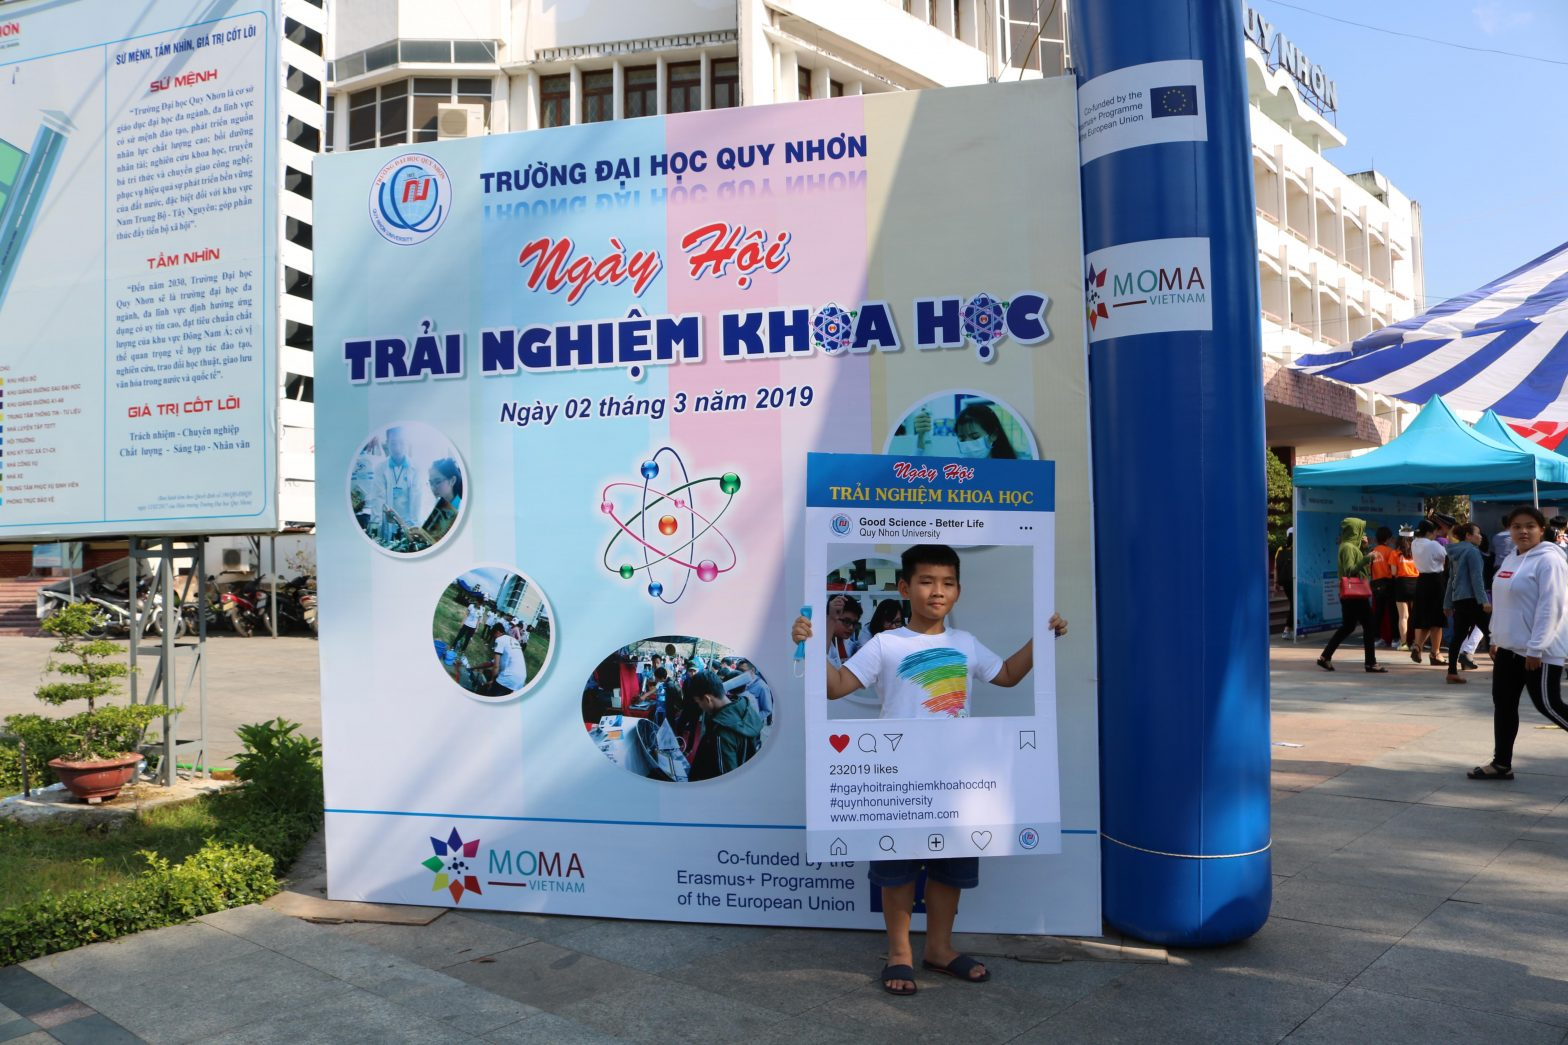 Video of the Science Experience Day at Quy Nhon University 2nd March 2019.